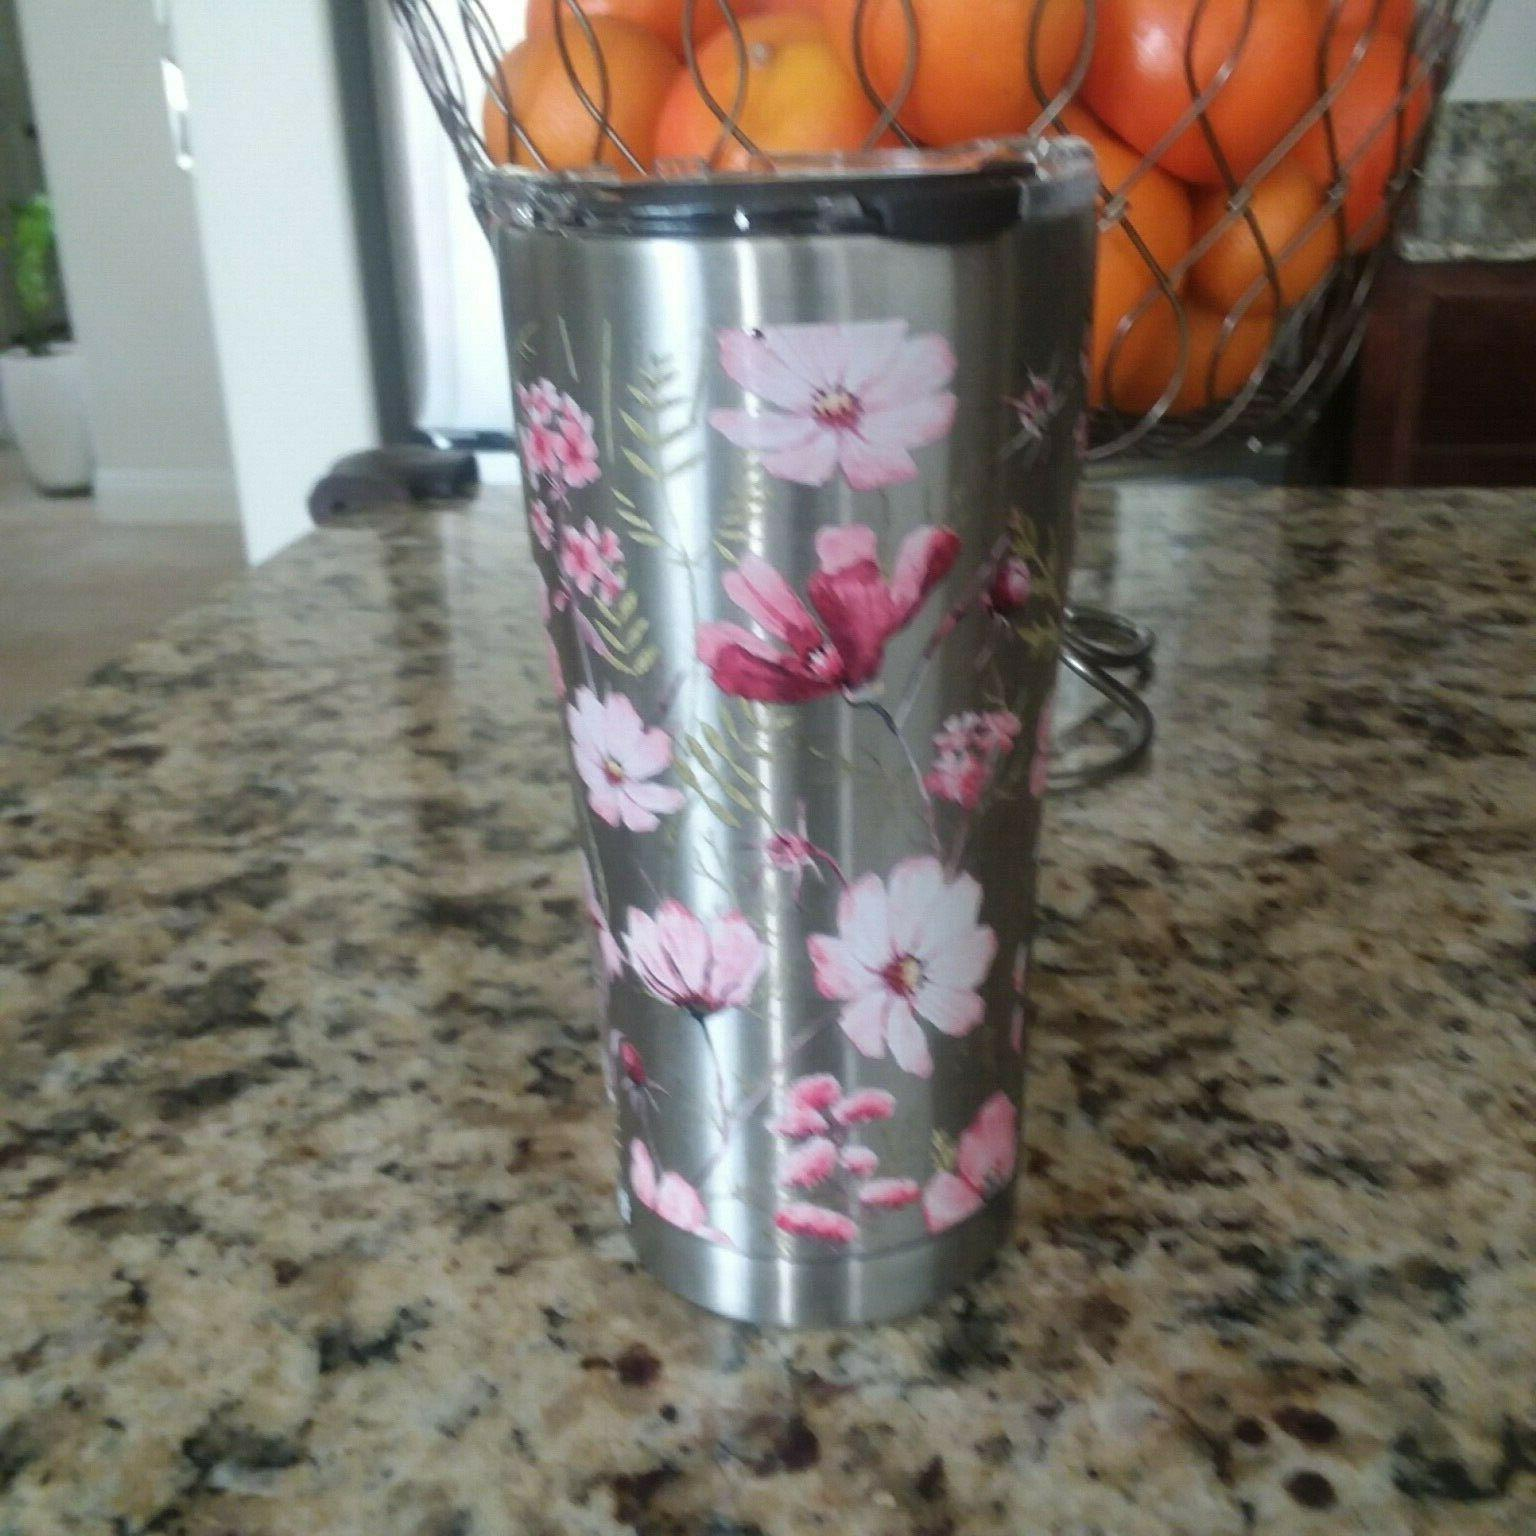 floral flowerssic edge stainless steel 20 oz